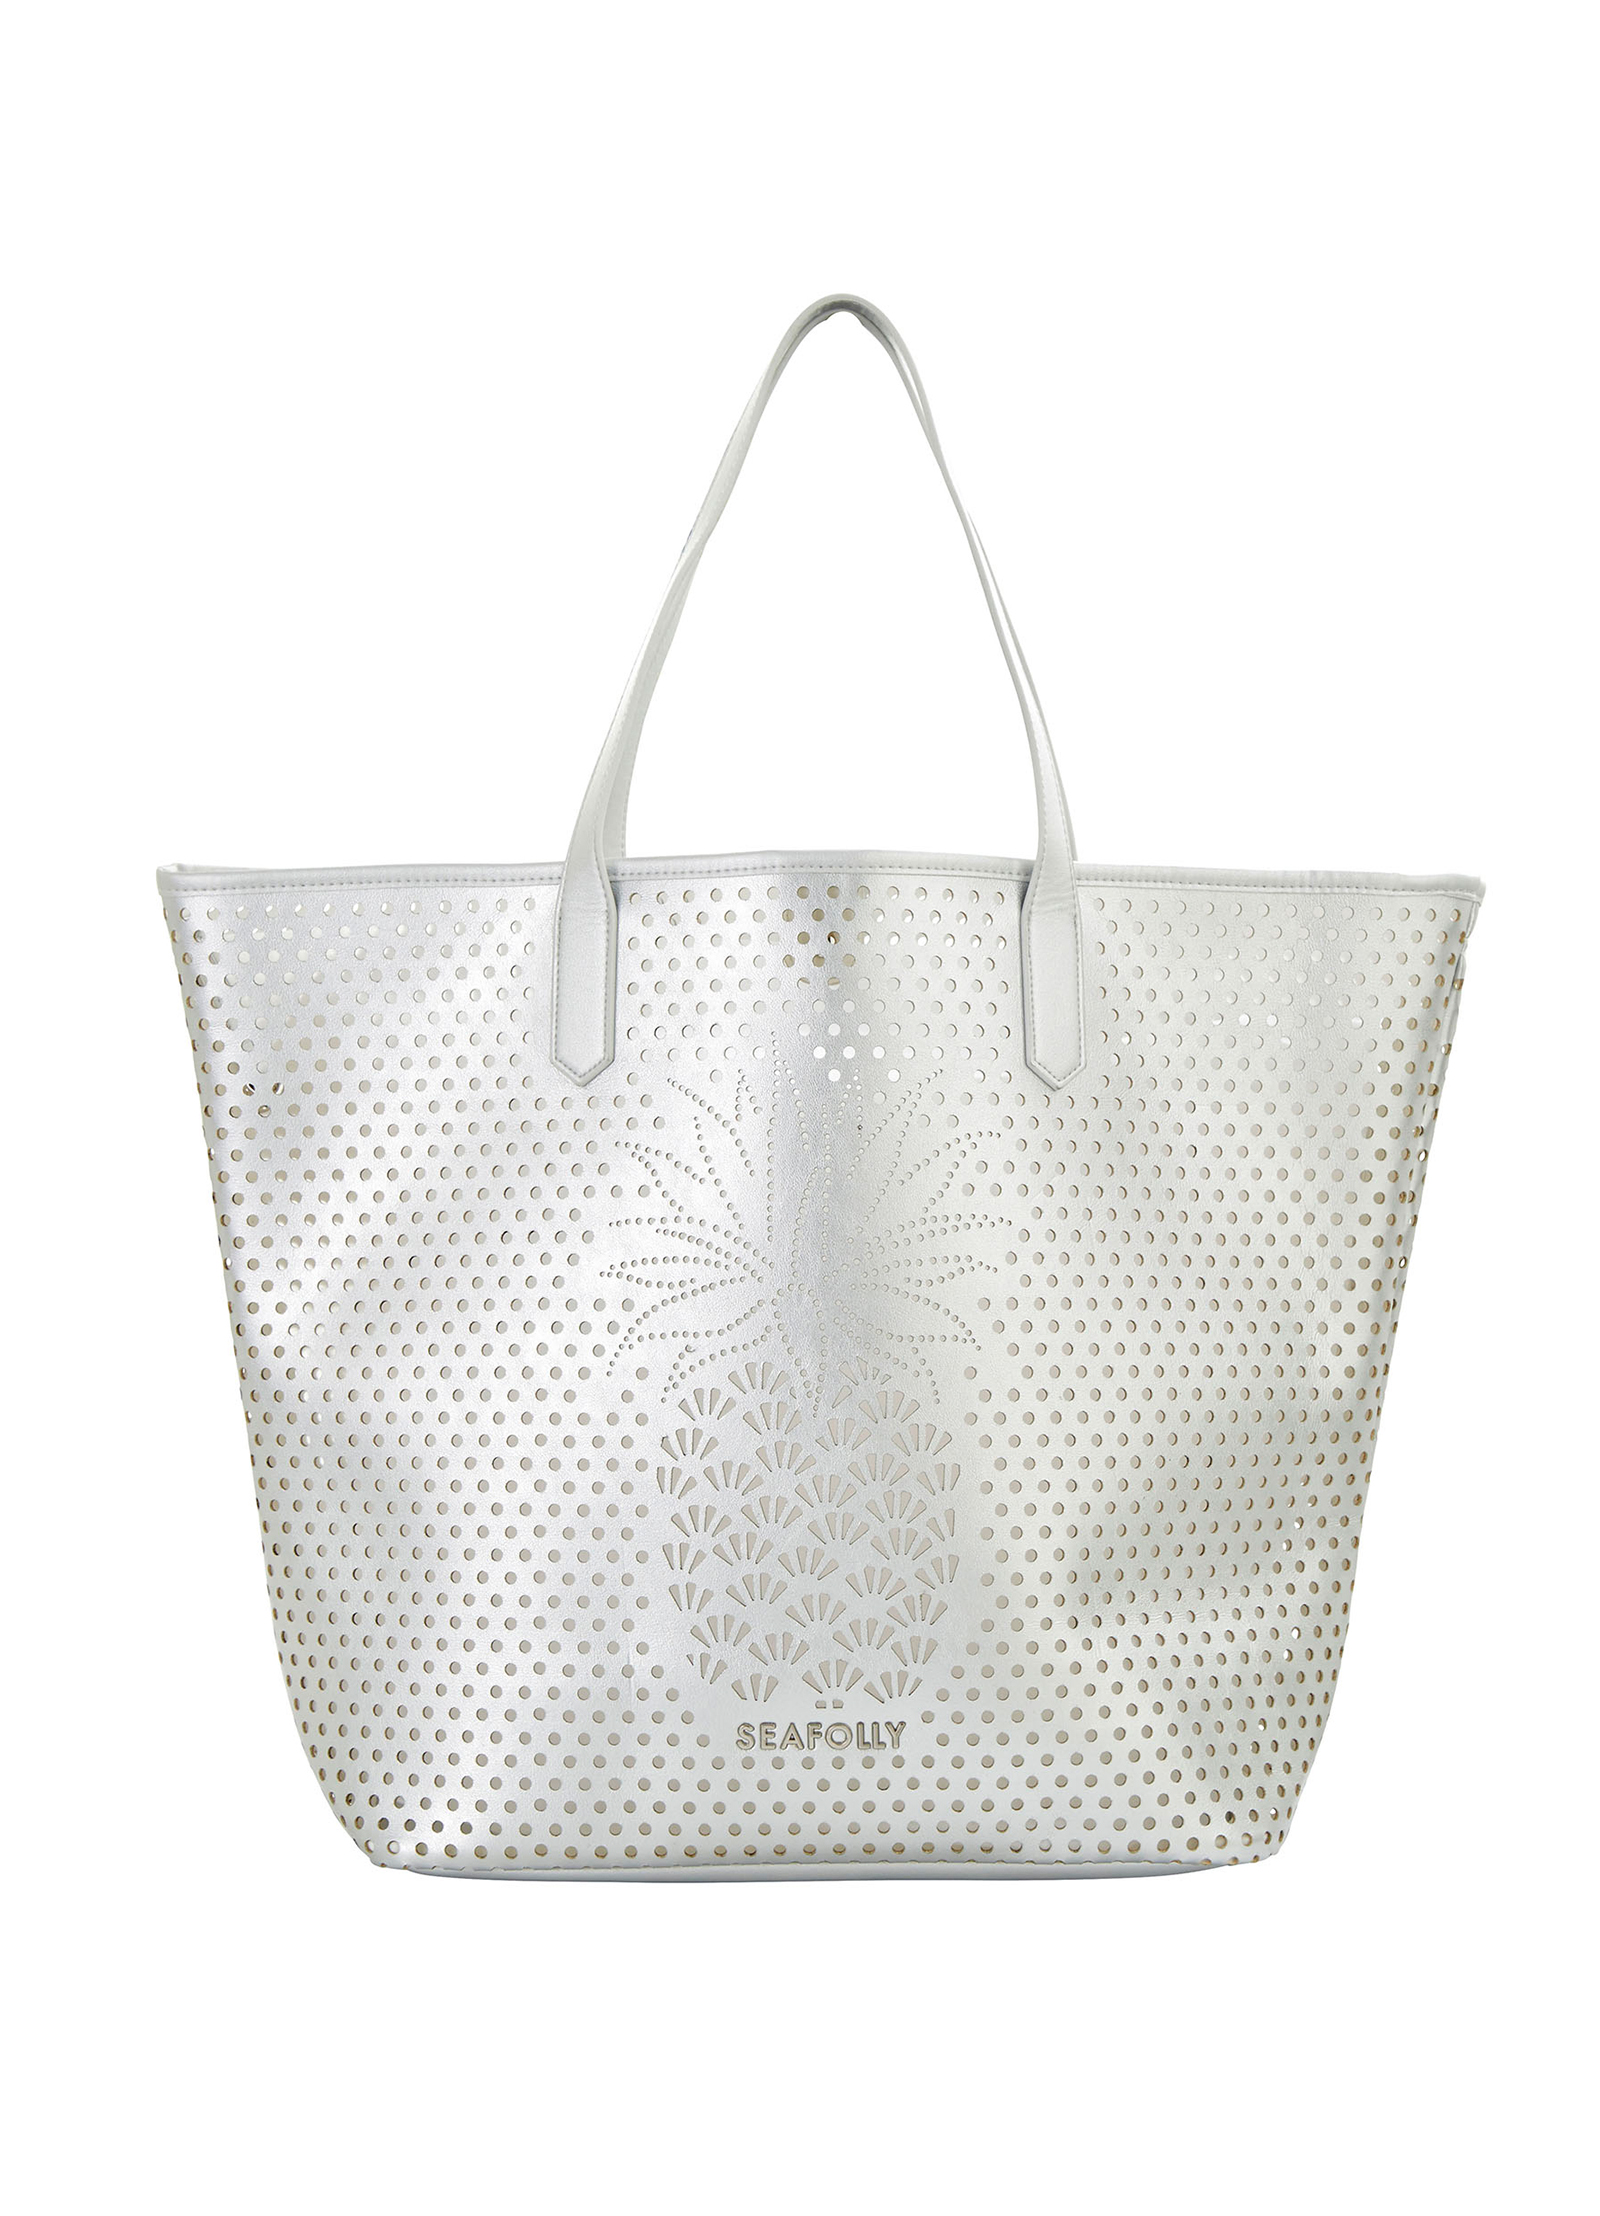 Seafolly Carried Away Pineapple Tote - Silver